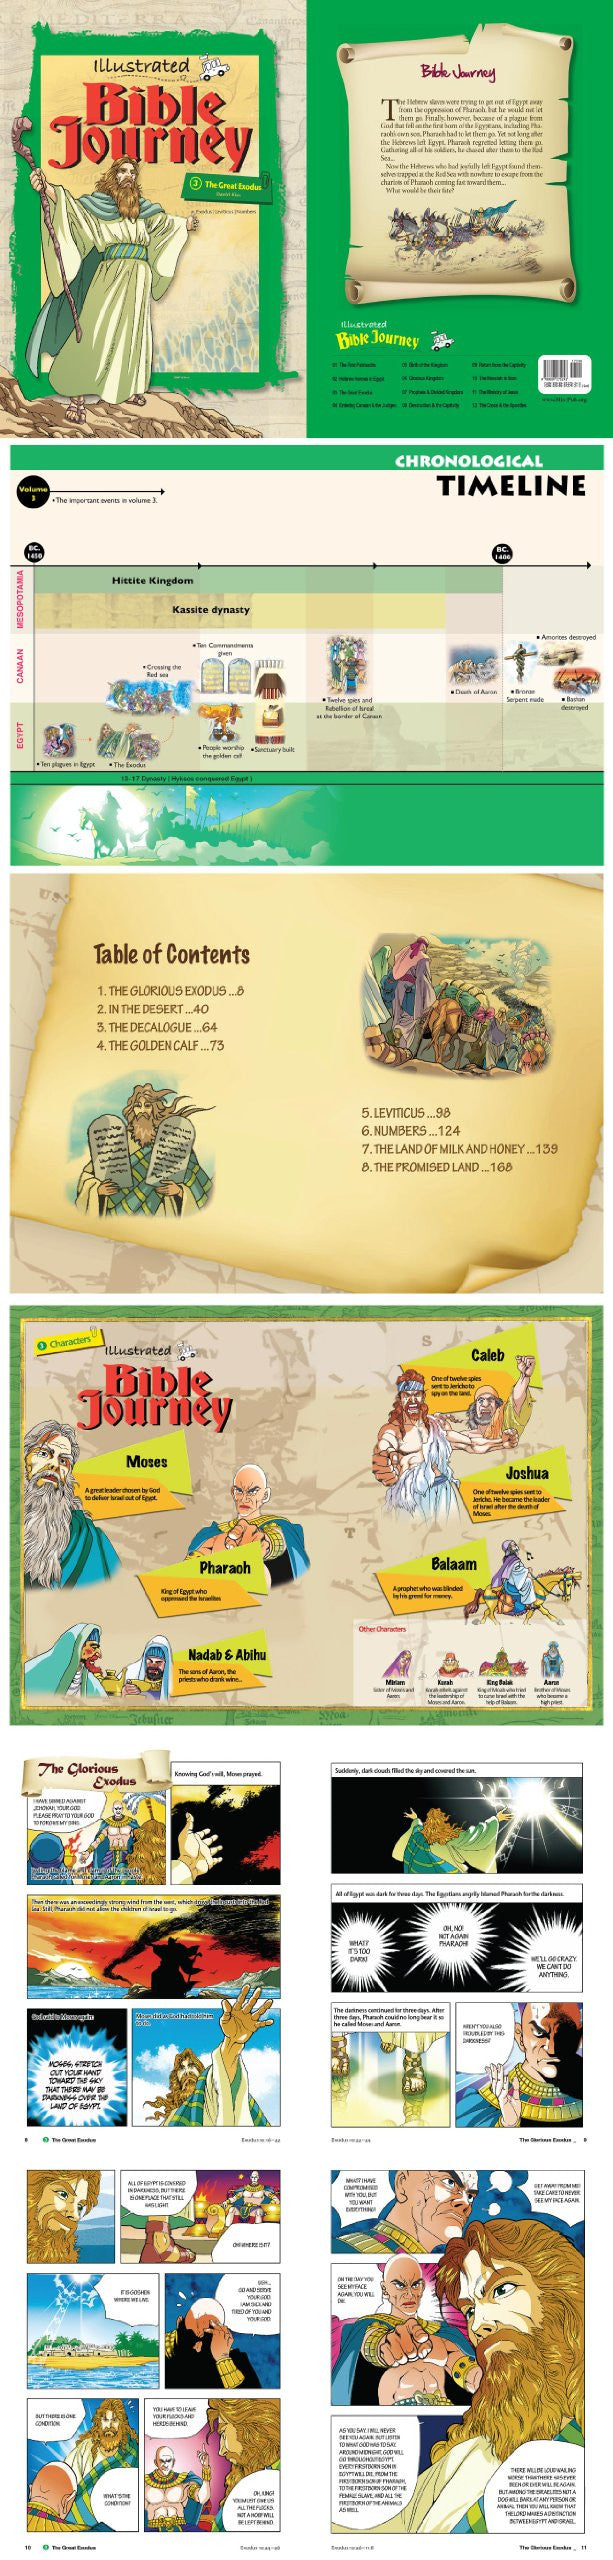 Bible Journey, 12 Volume Set - 40% OFF